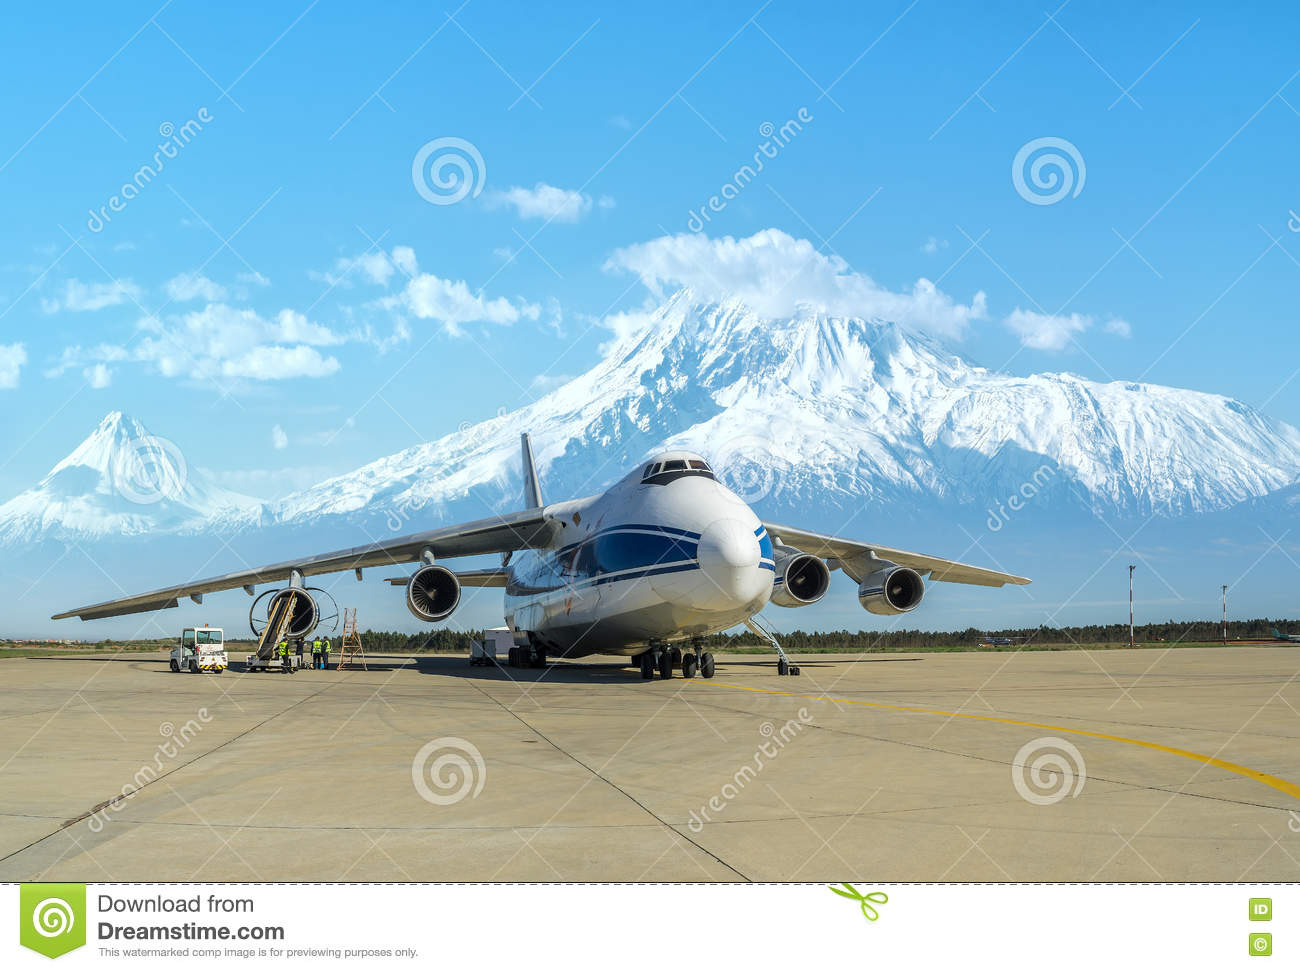 Aeroporto Yerevan : Russian ruslan cargo plane at the airport of yerevan